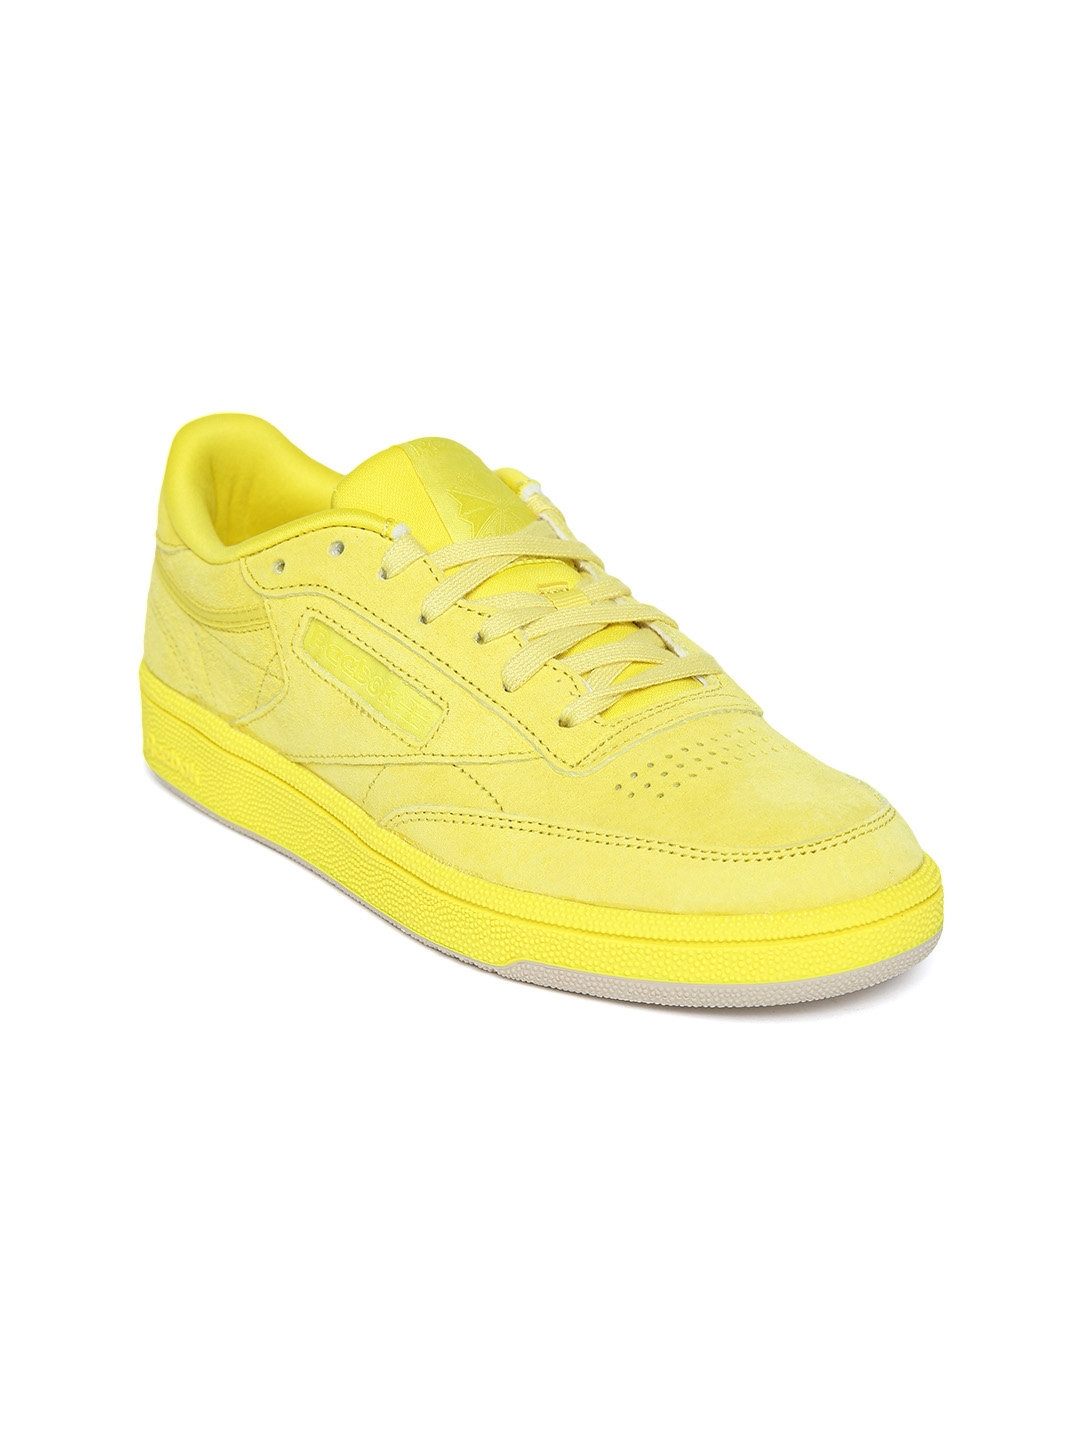 d9347f29860 Buy Reebok Classic Women Yellow Suede Club C 85 Sneakers - Casual ...